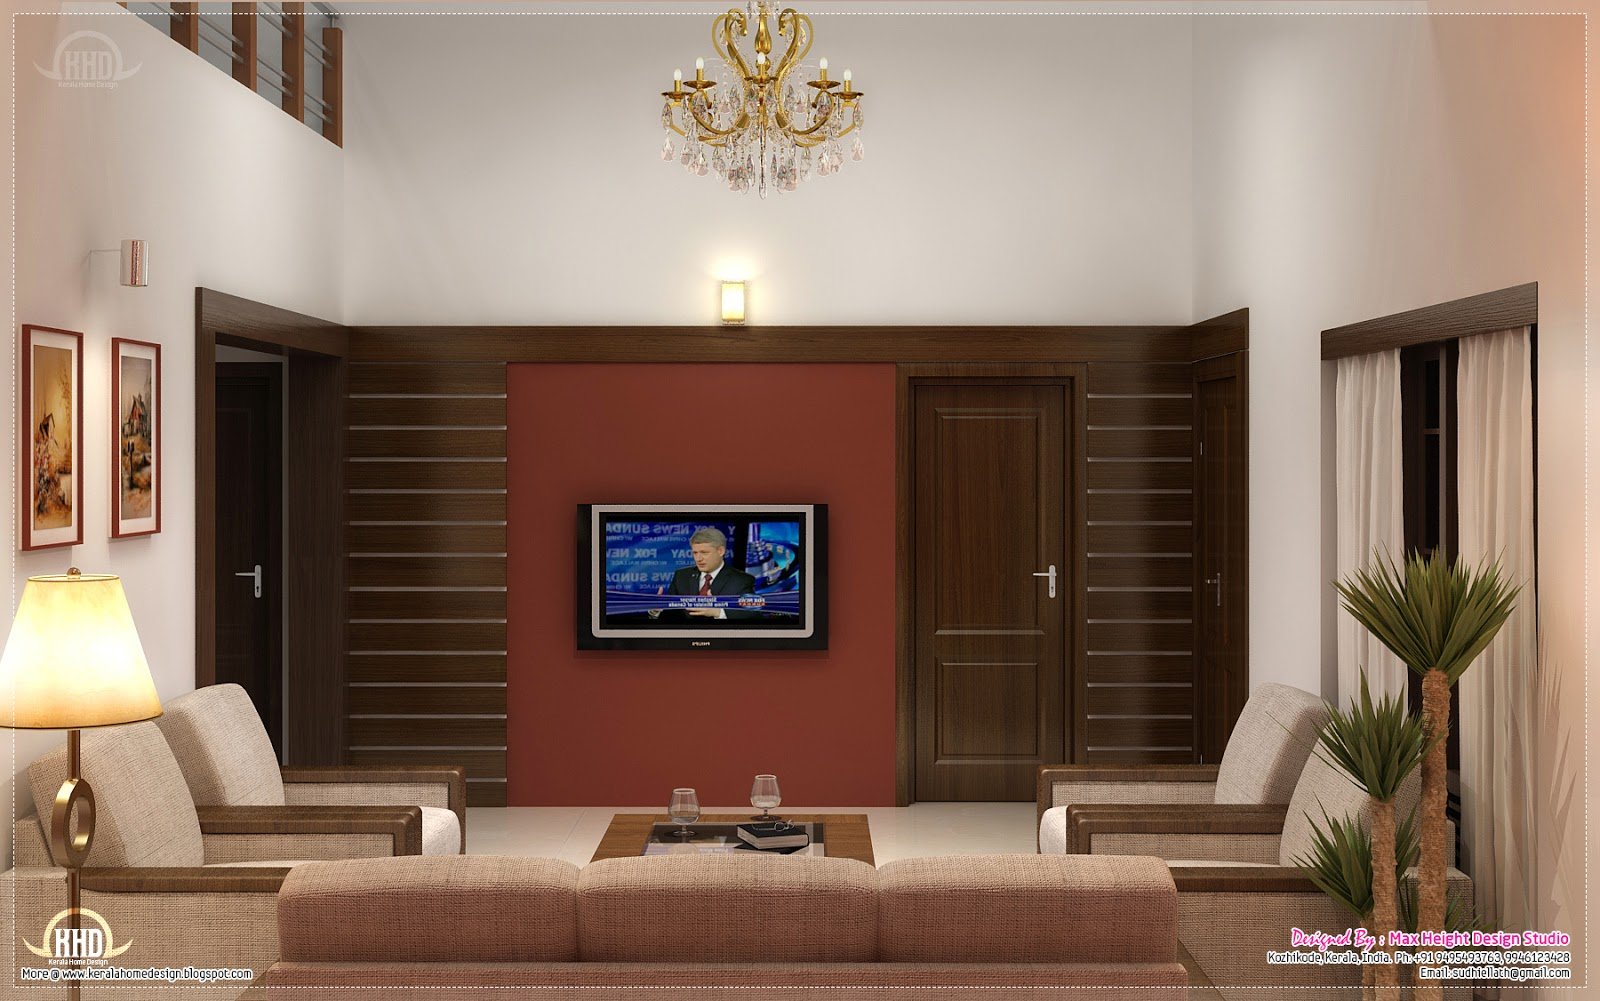 Kerala home interior design photos home design ideas for Interior designs in kerala